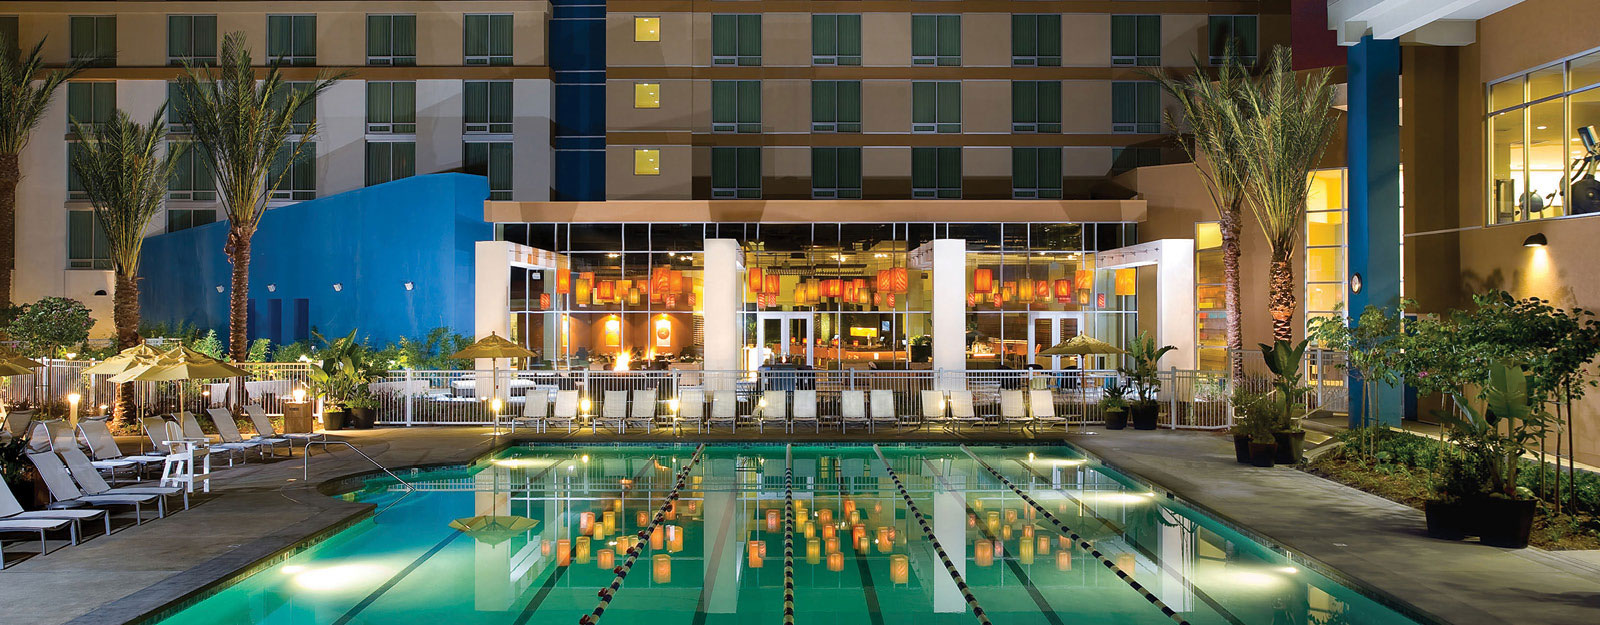 Renaissance Luxury Spa Hotel Pleasanton Clubsport Health And Fitness Gym